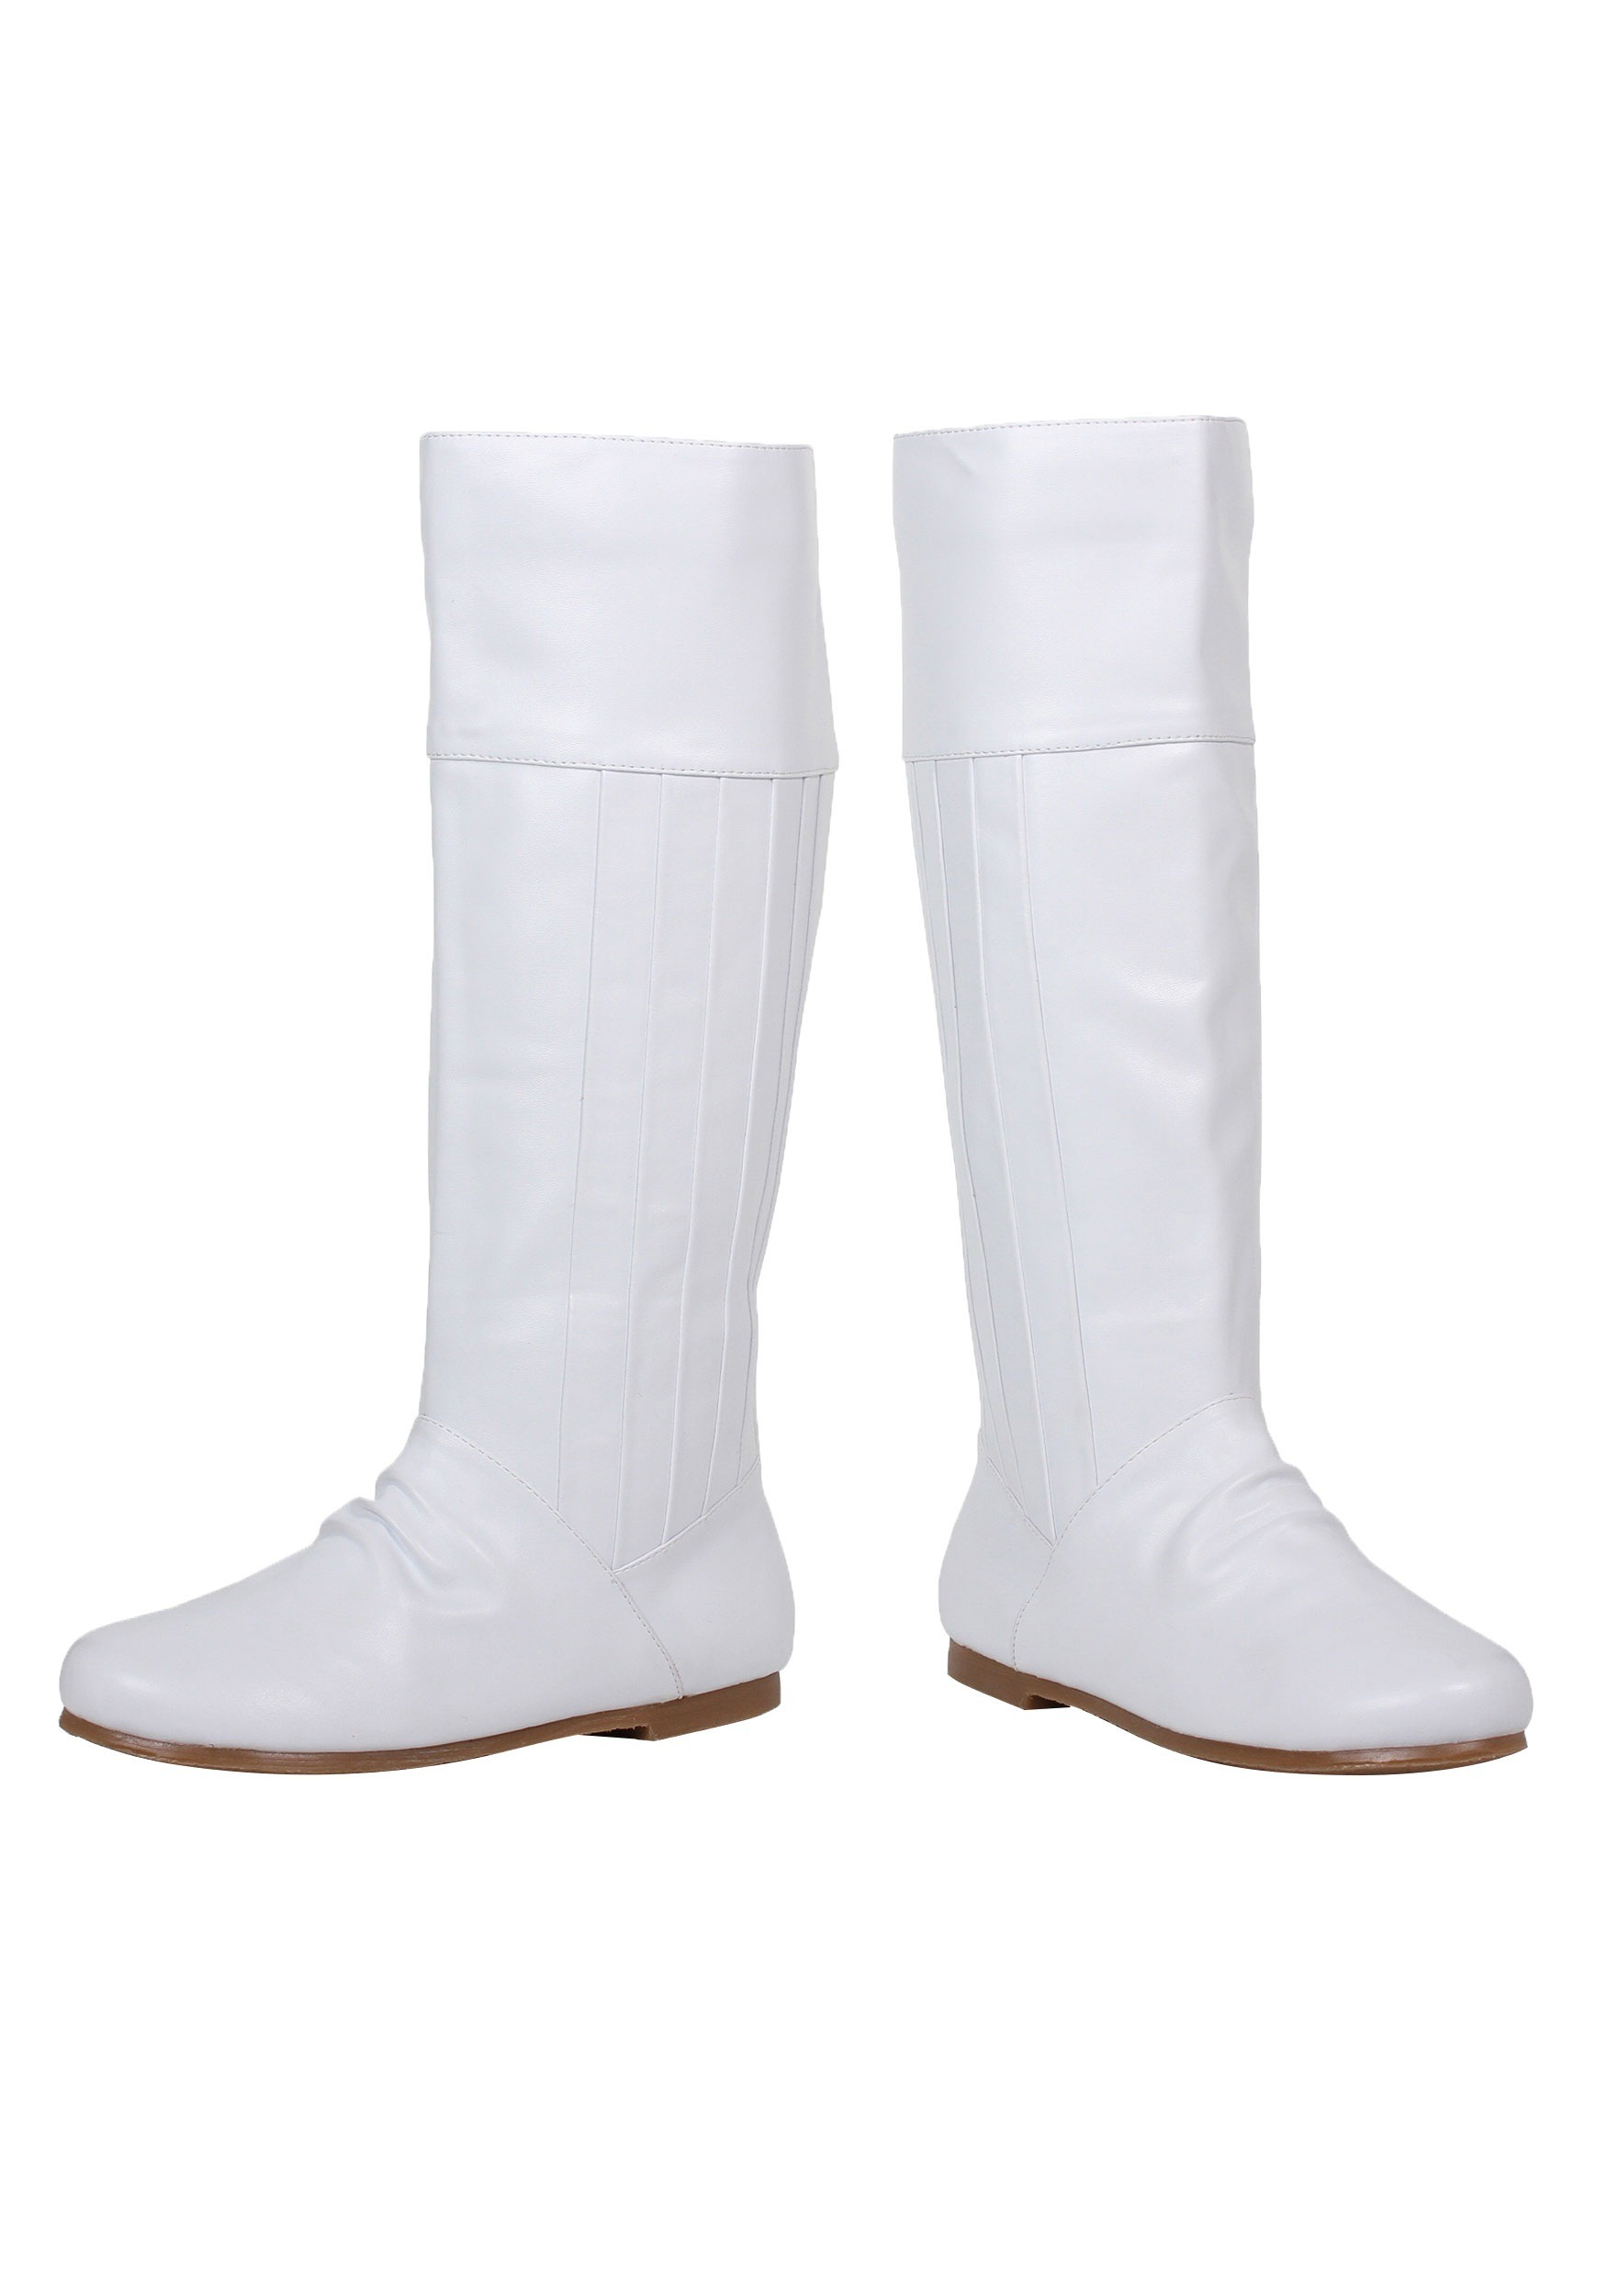 White Princess Boots